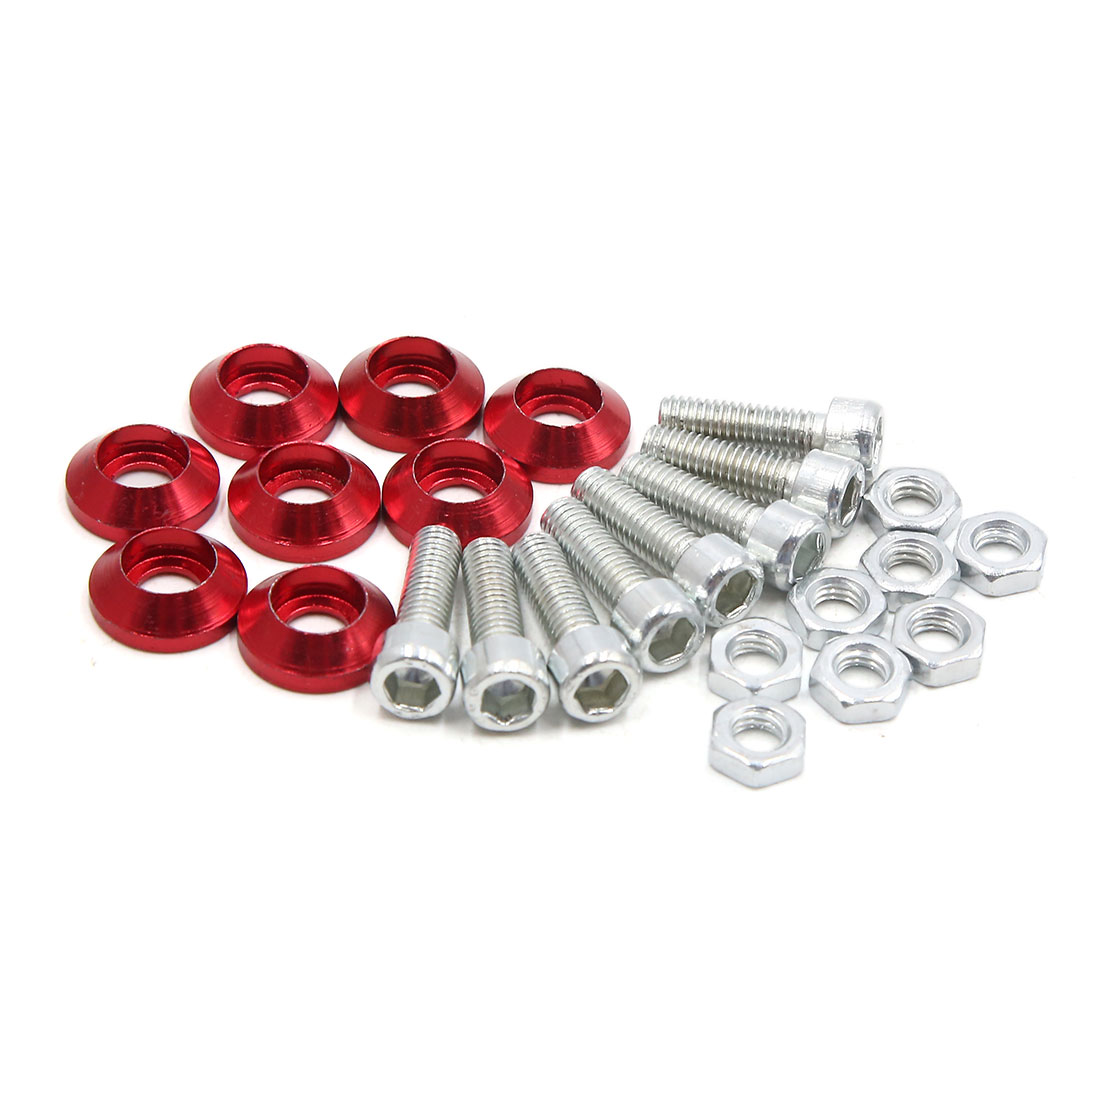 8pcs Red Aluminum Alloy Hex Socket License Plate Bolts Screws for Motorcycle